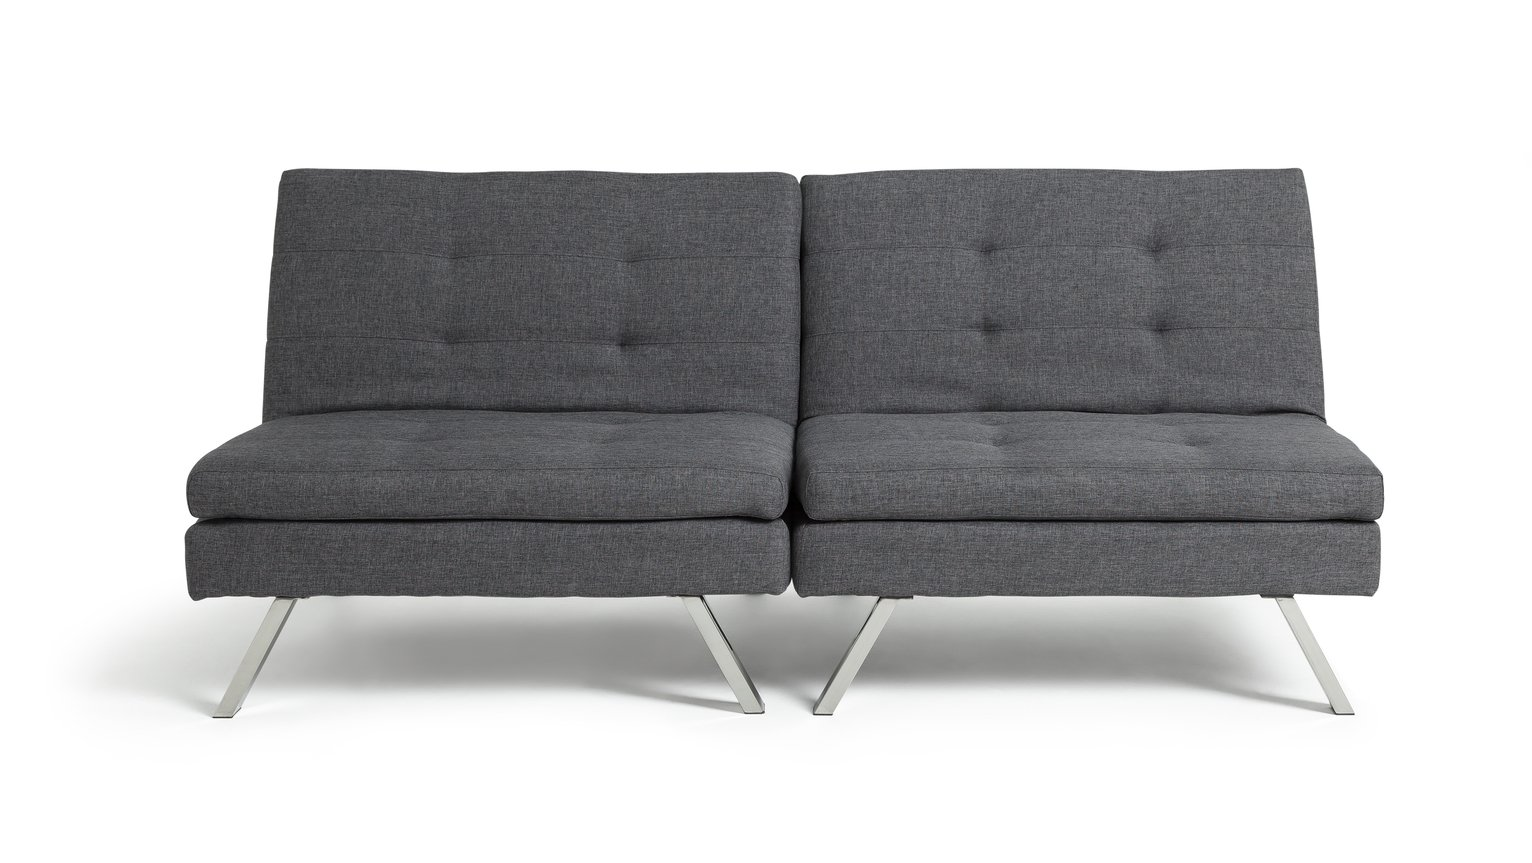 hygena duo 2 seater clic clac sofa bed   charcoal sofa beds chair beds and futons   argos  rh   argos co uk